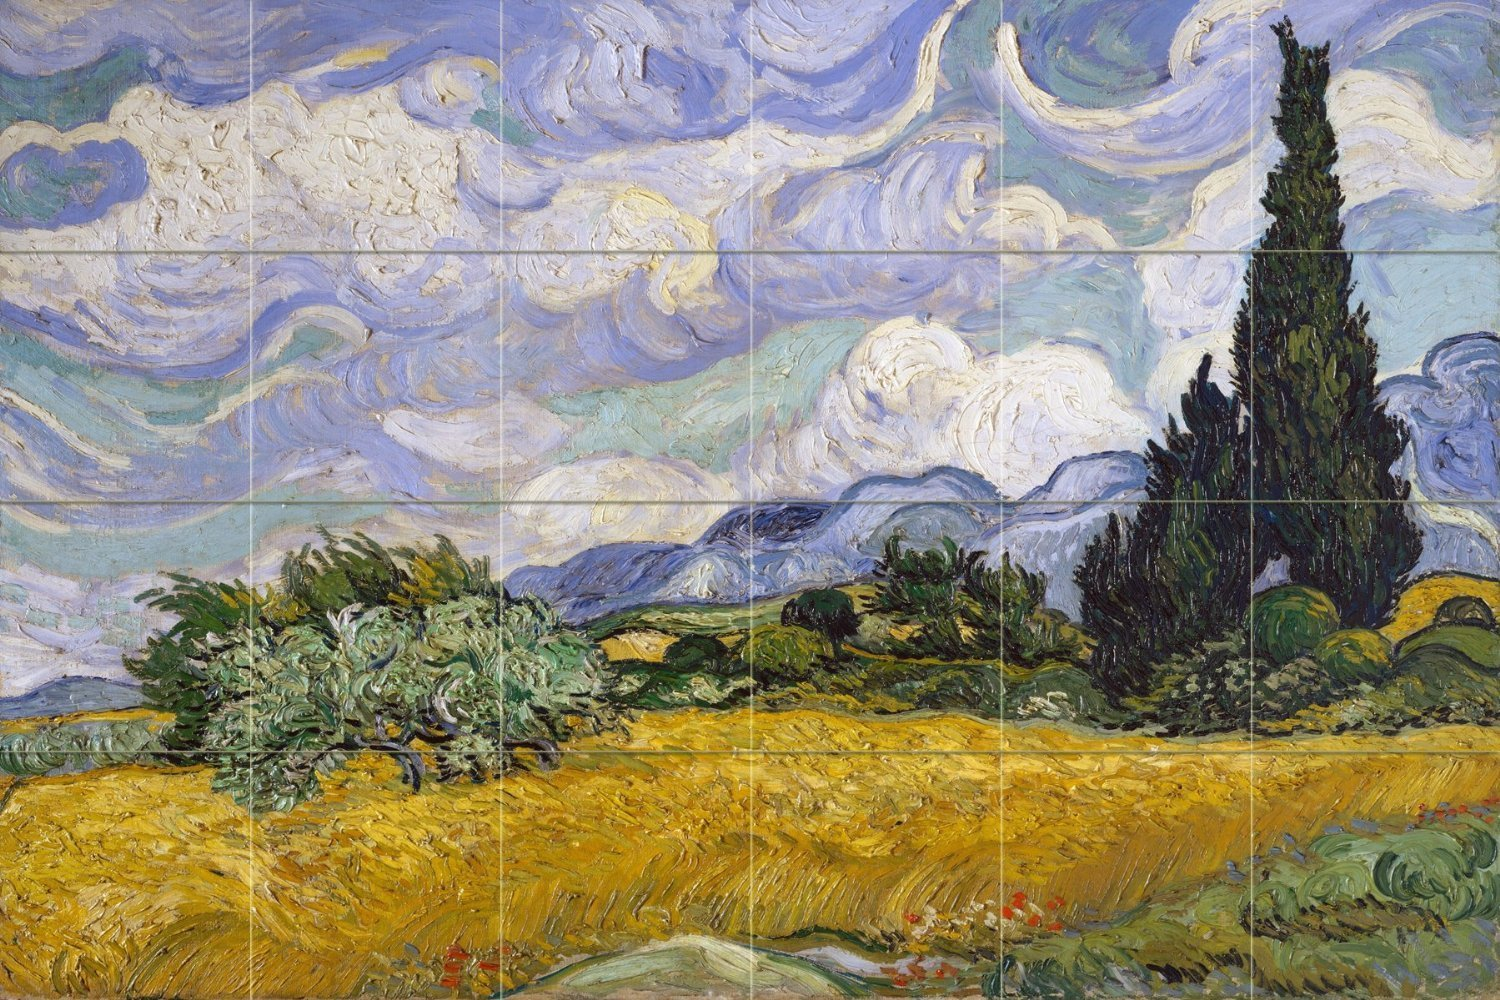 Wheat Field with Cypresses by Vincent van Gogh Tile Mural Kitchen Bathroom Wall Backsplash Behind Stove Range Sink Splashback 6x4 4.25'' Ceramic, Glossy by FlekmanArt